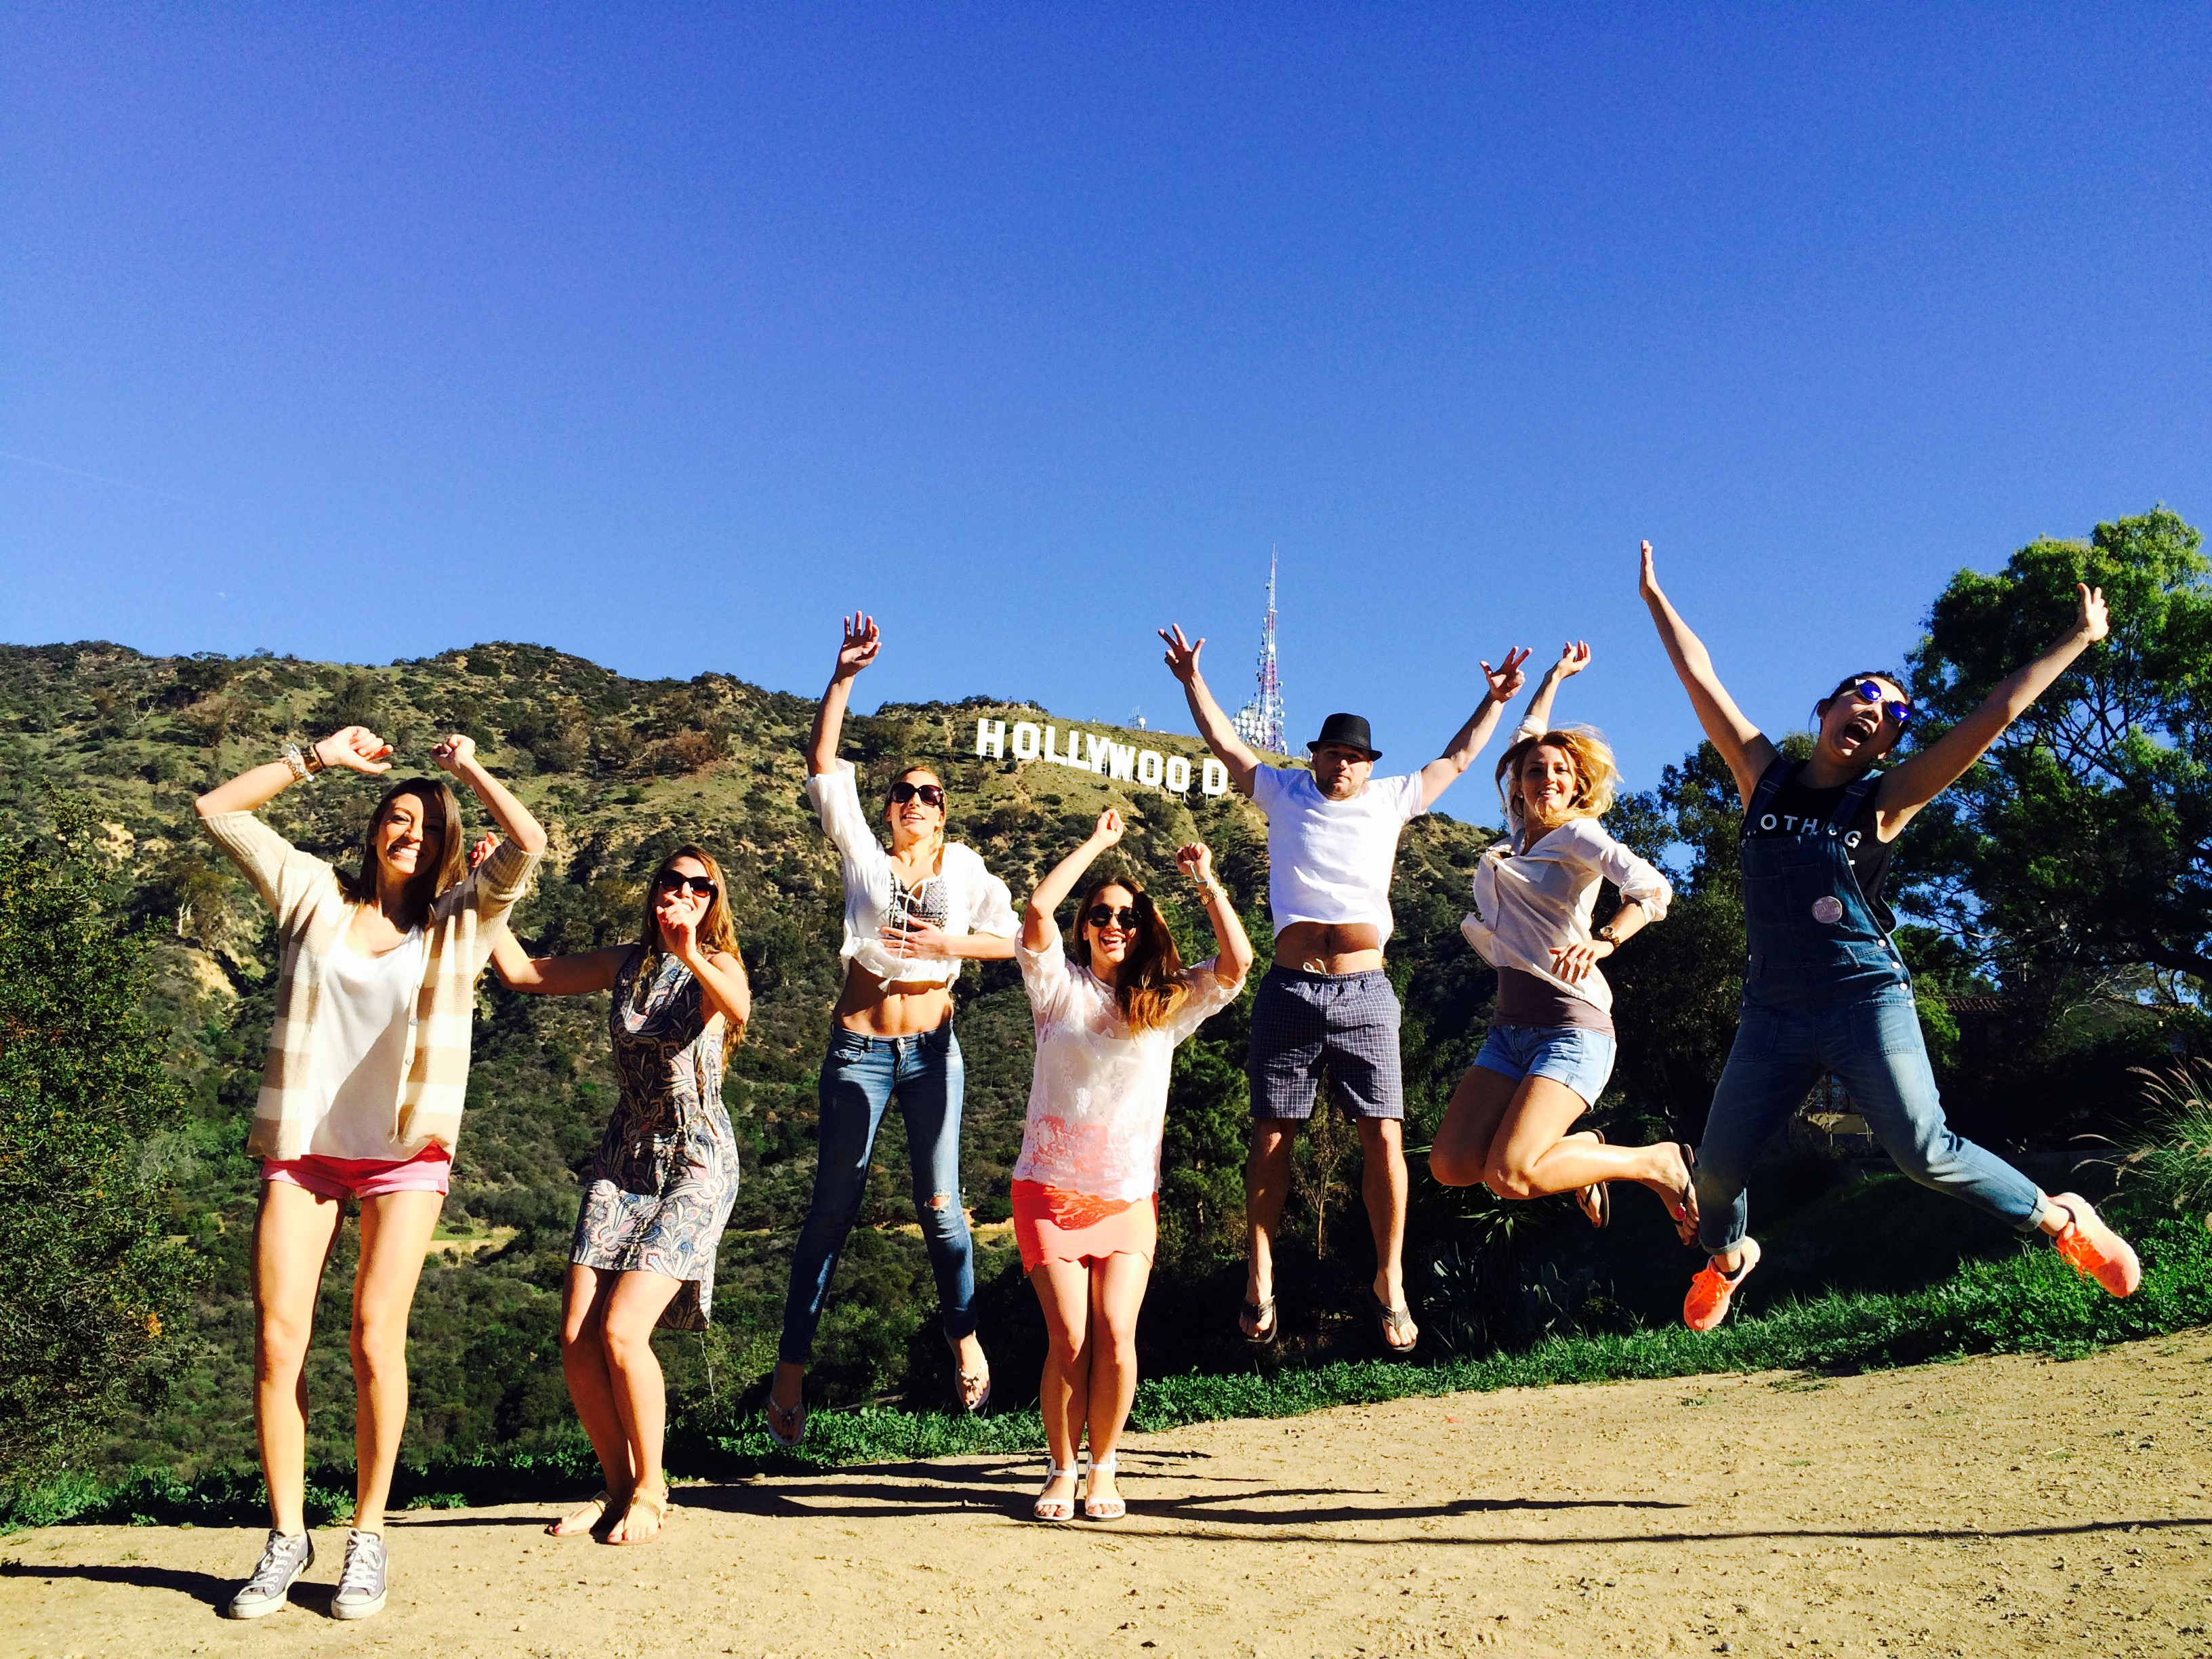 Friends jumping at Hollywood Sign